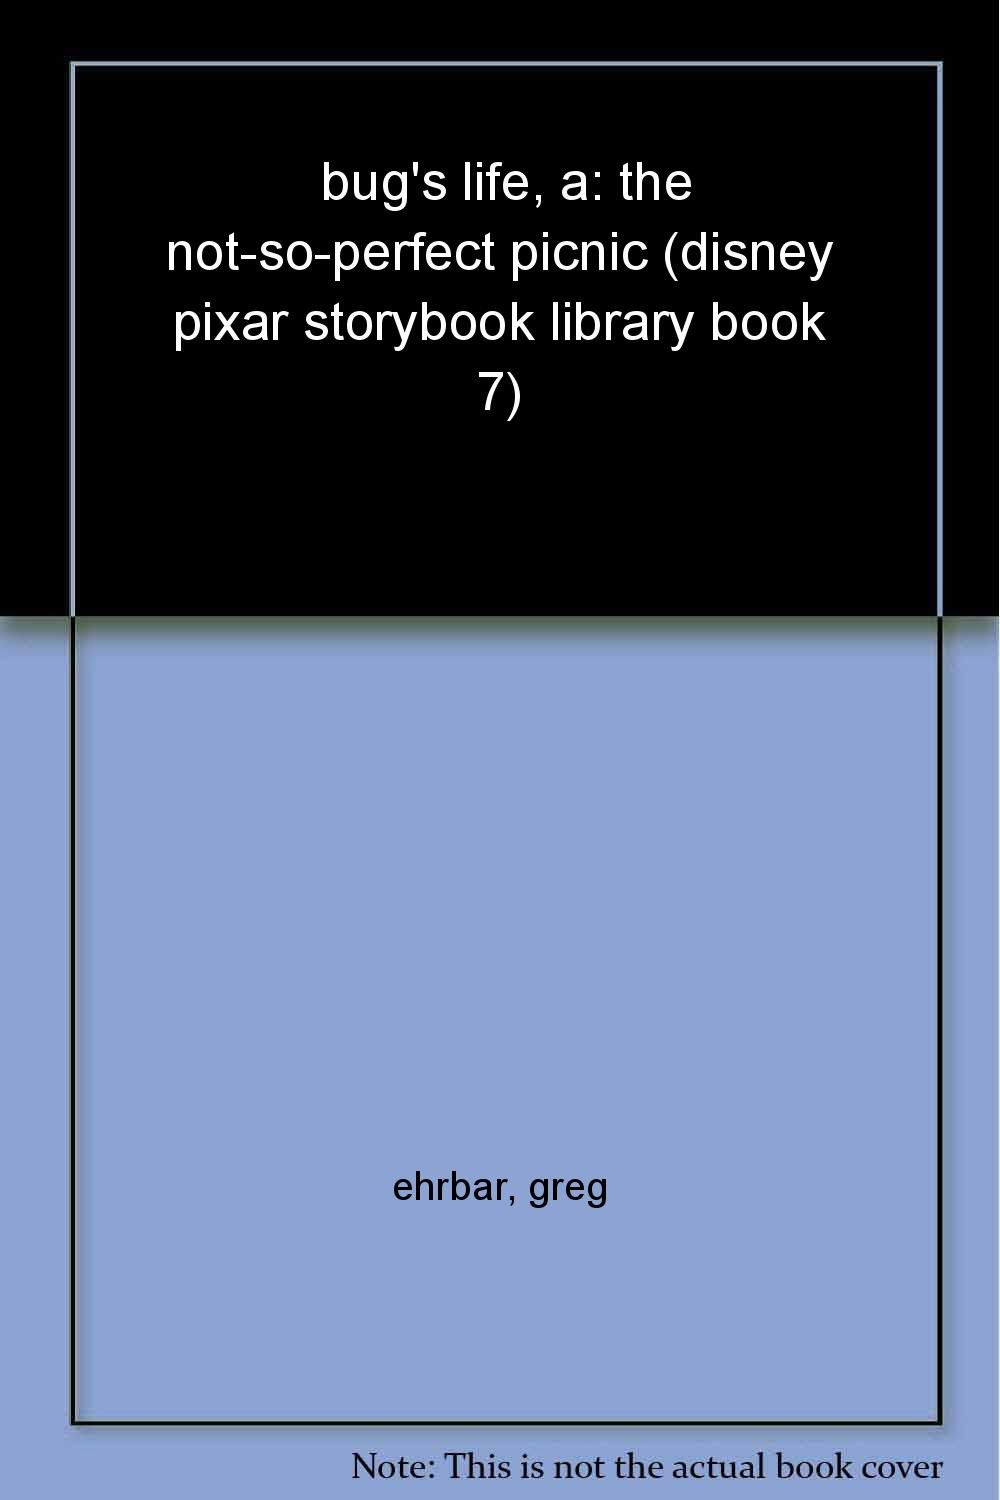 DISNEY PIXAR STORYBOOK LIBRARY, A BUGS LIFE: THE NOT SO PERFECT PICNIC ebook